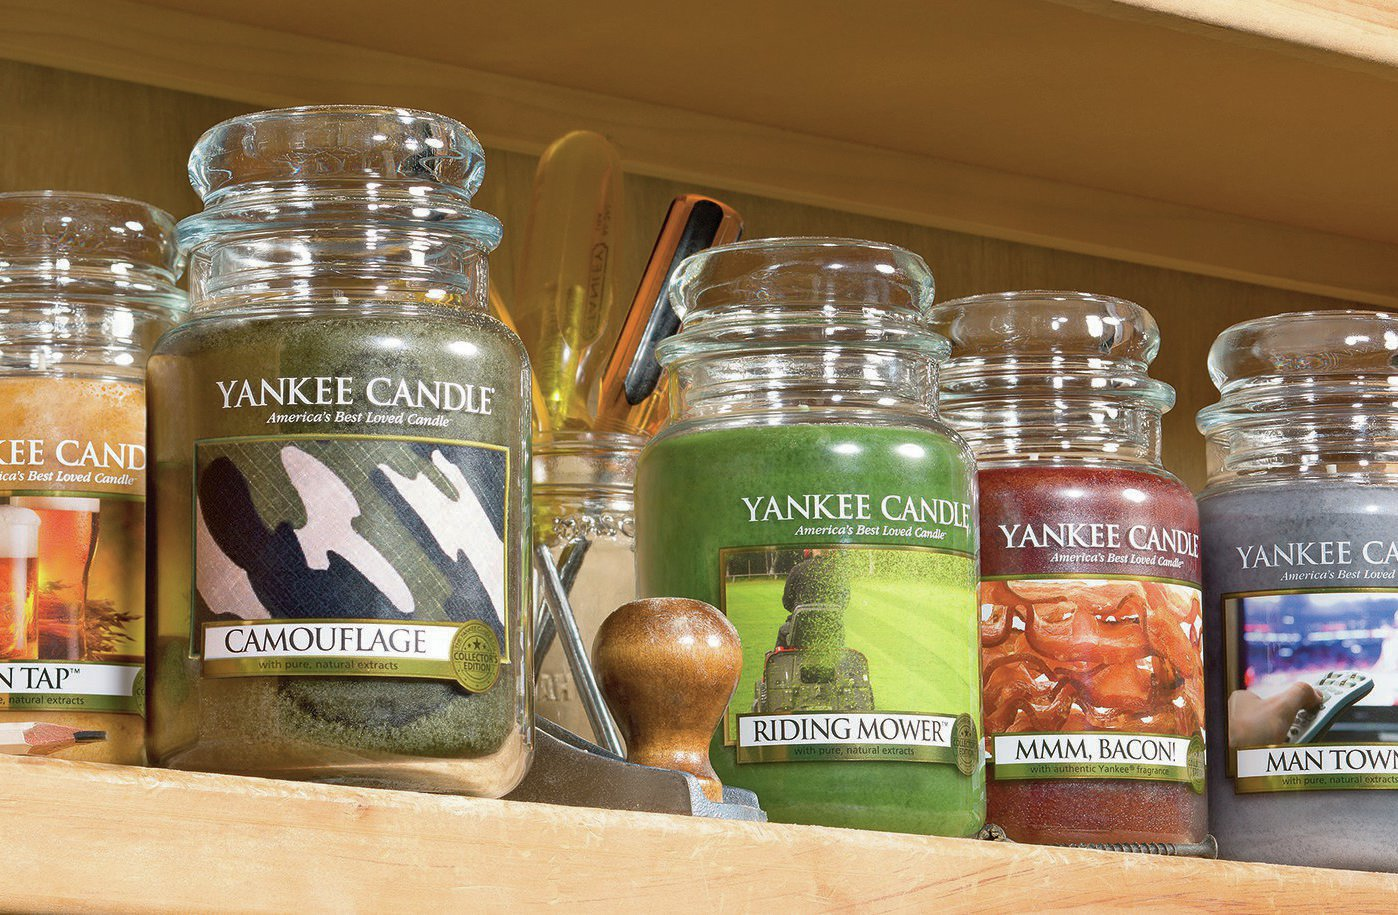 Yankee candle scents